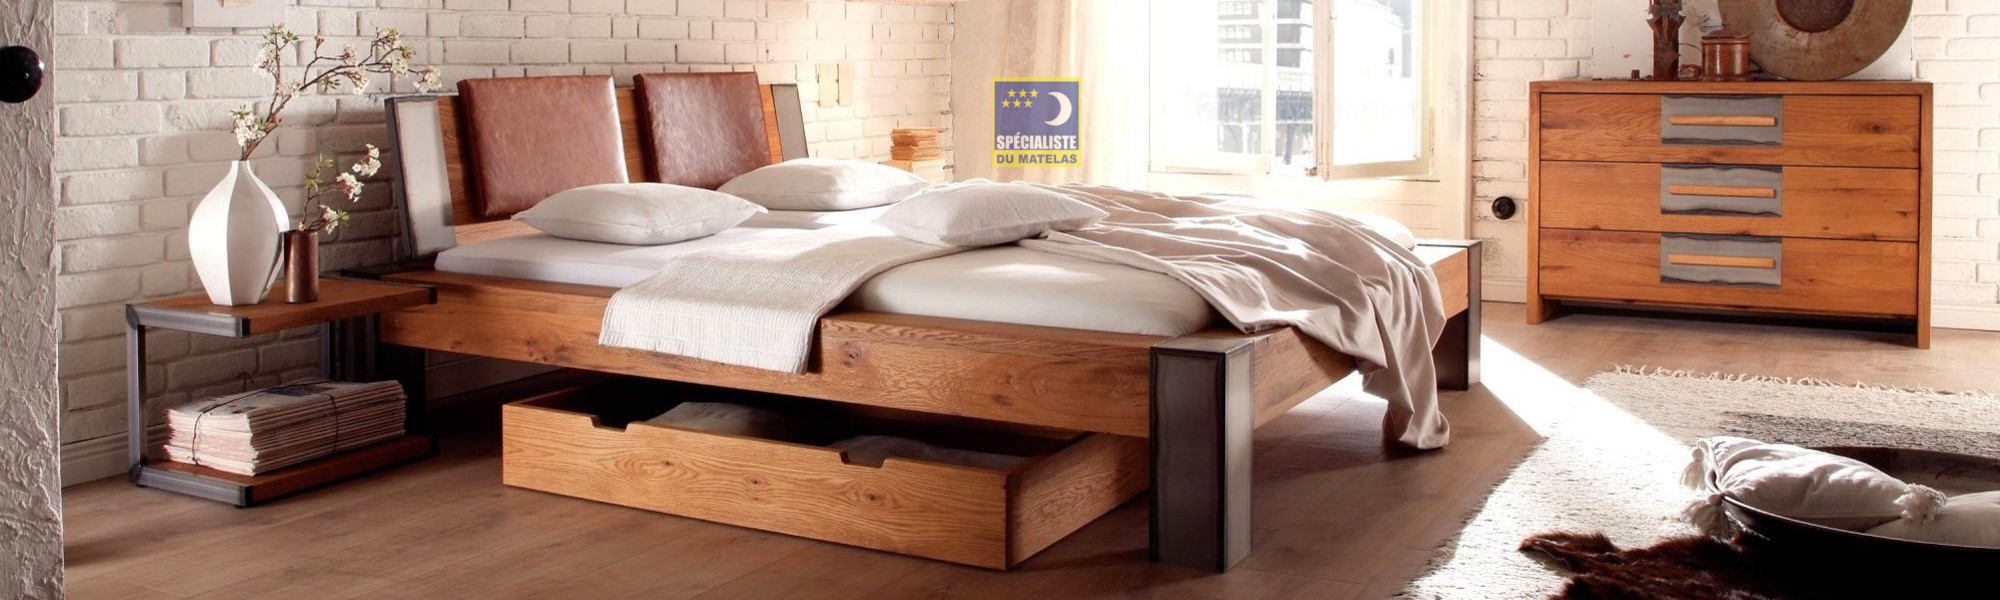 matelas literie sommier au specialiste du matelas neupr le sp cialiste du matelas. Black Bedroom Furniture Sets. Home Design Ideas